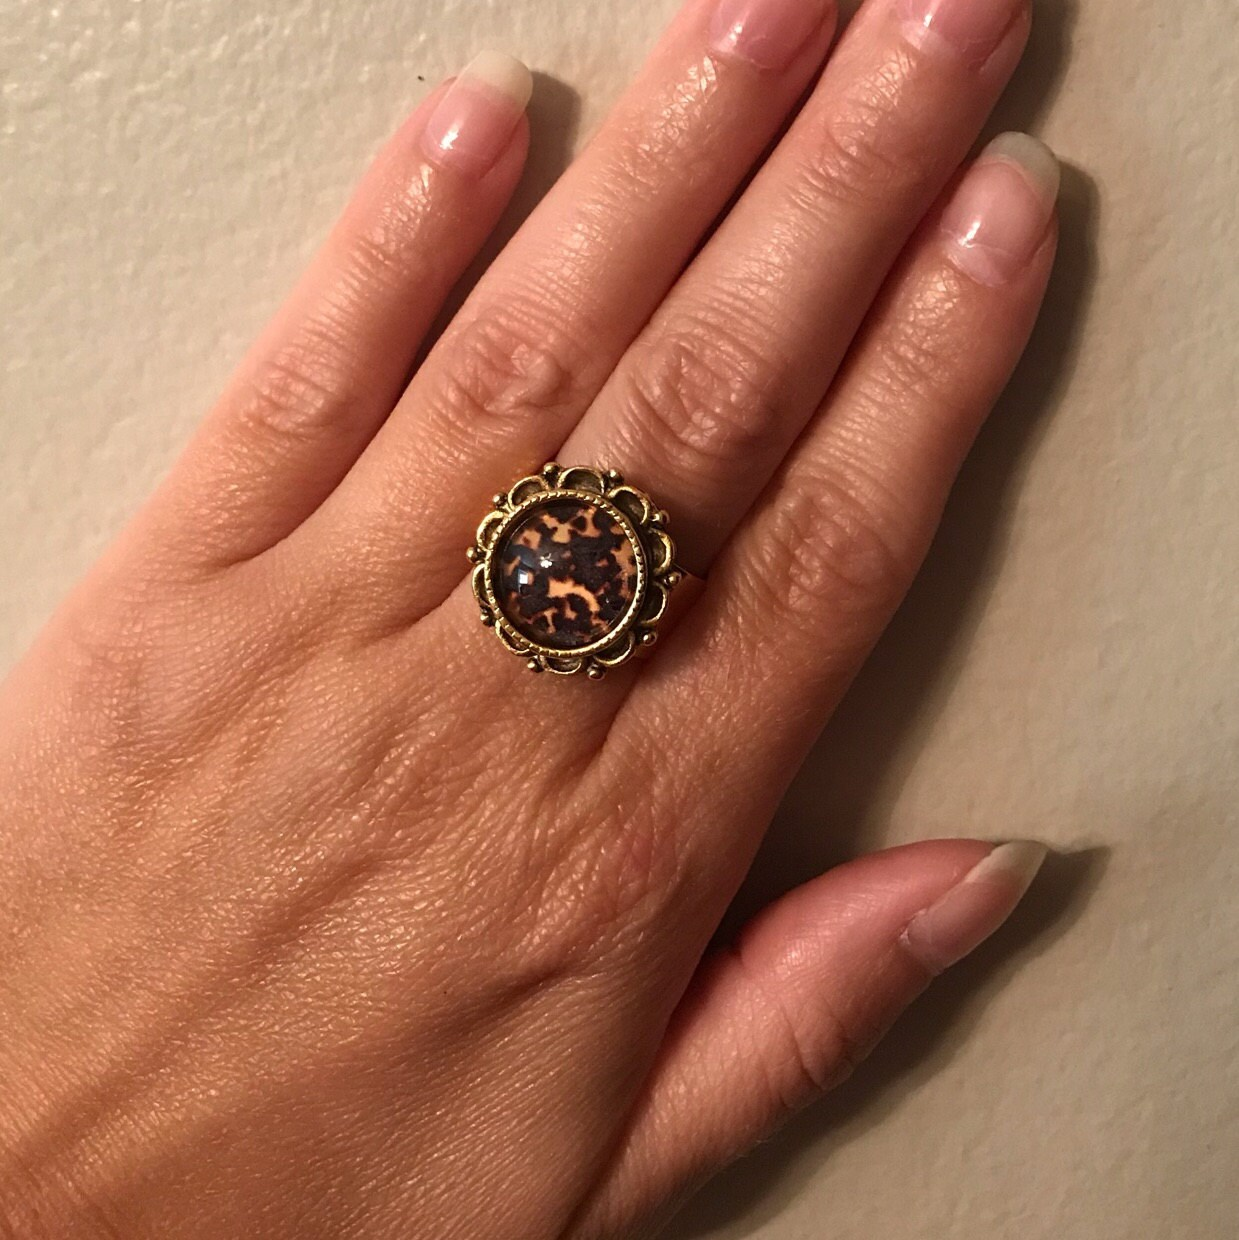 Susan W Williams added a photo of their purchase